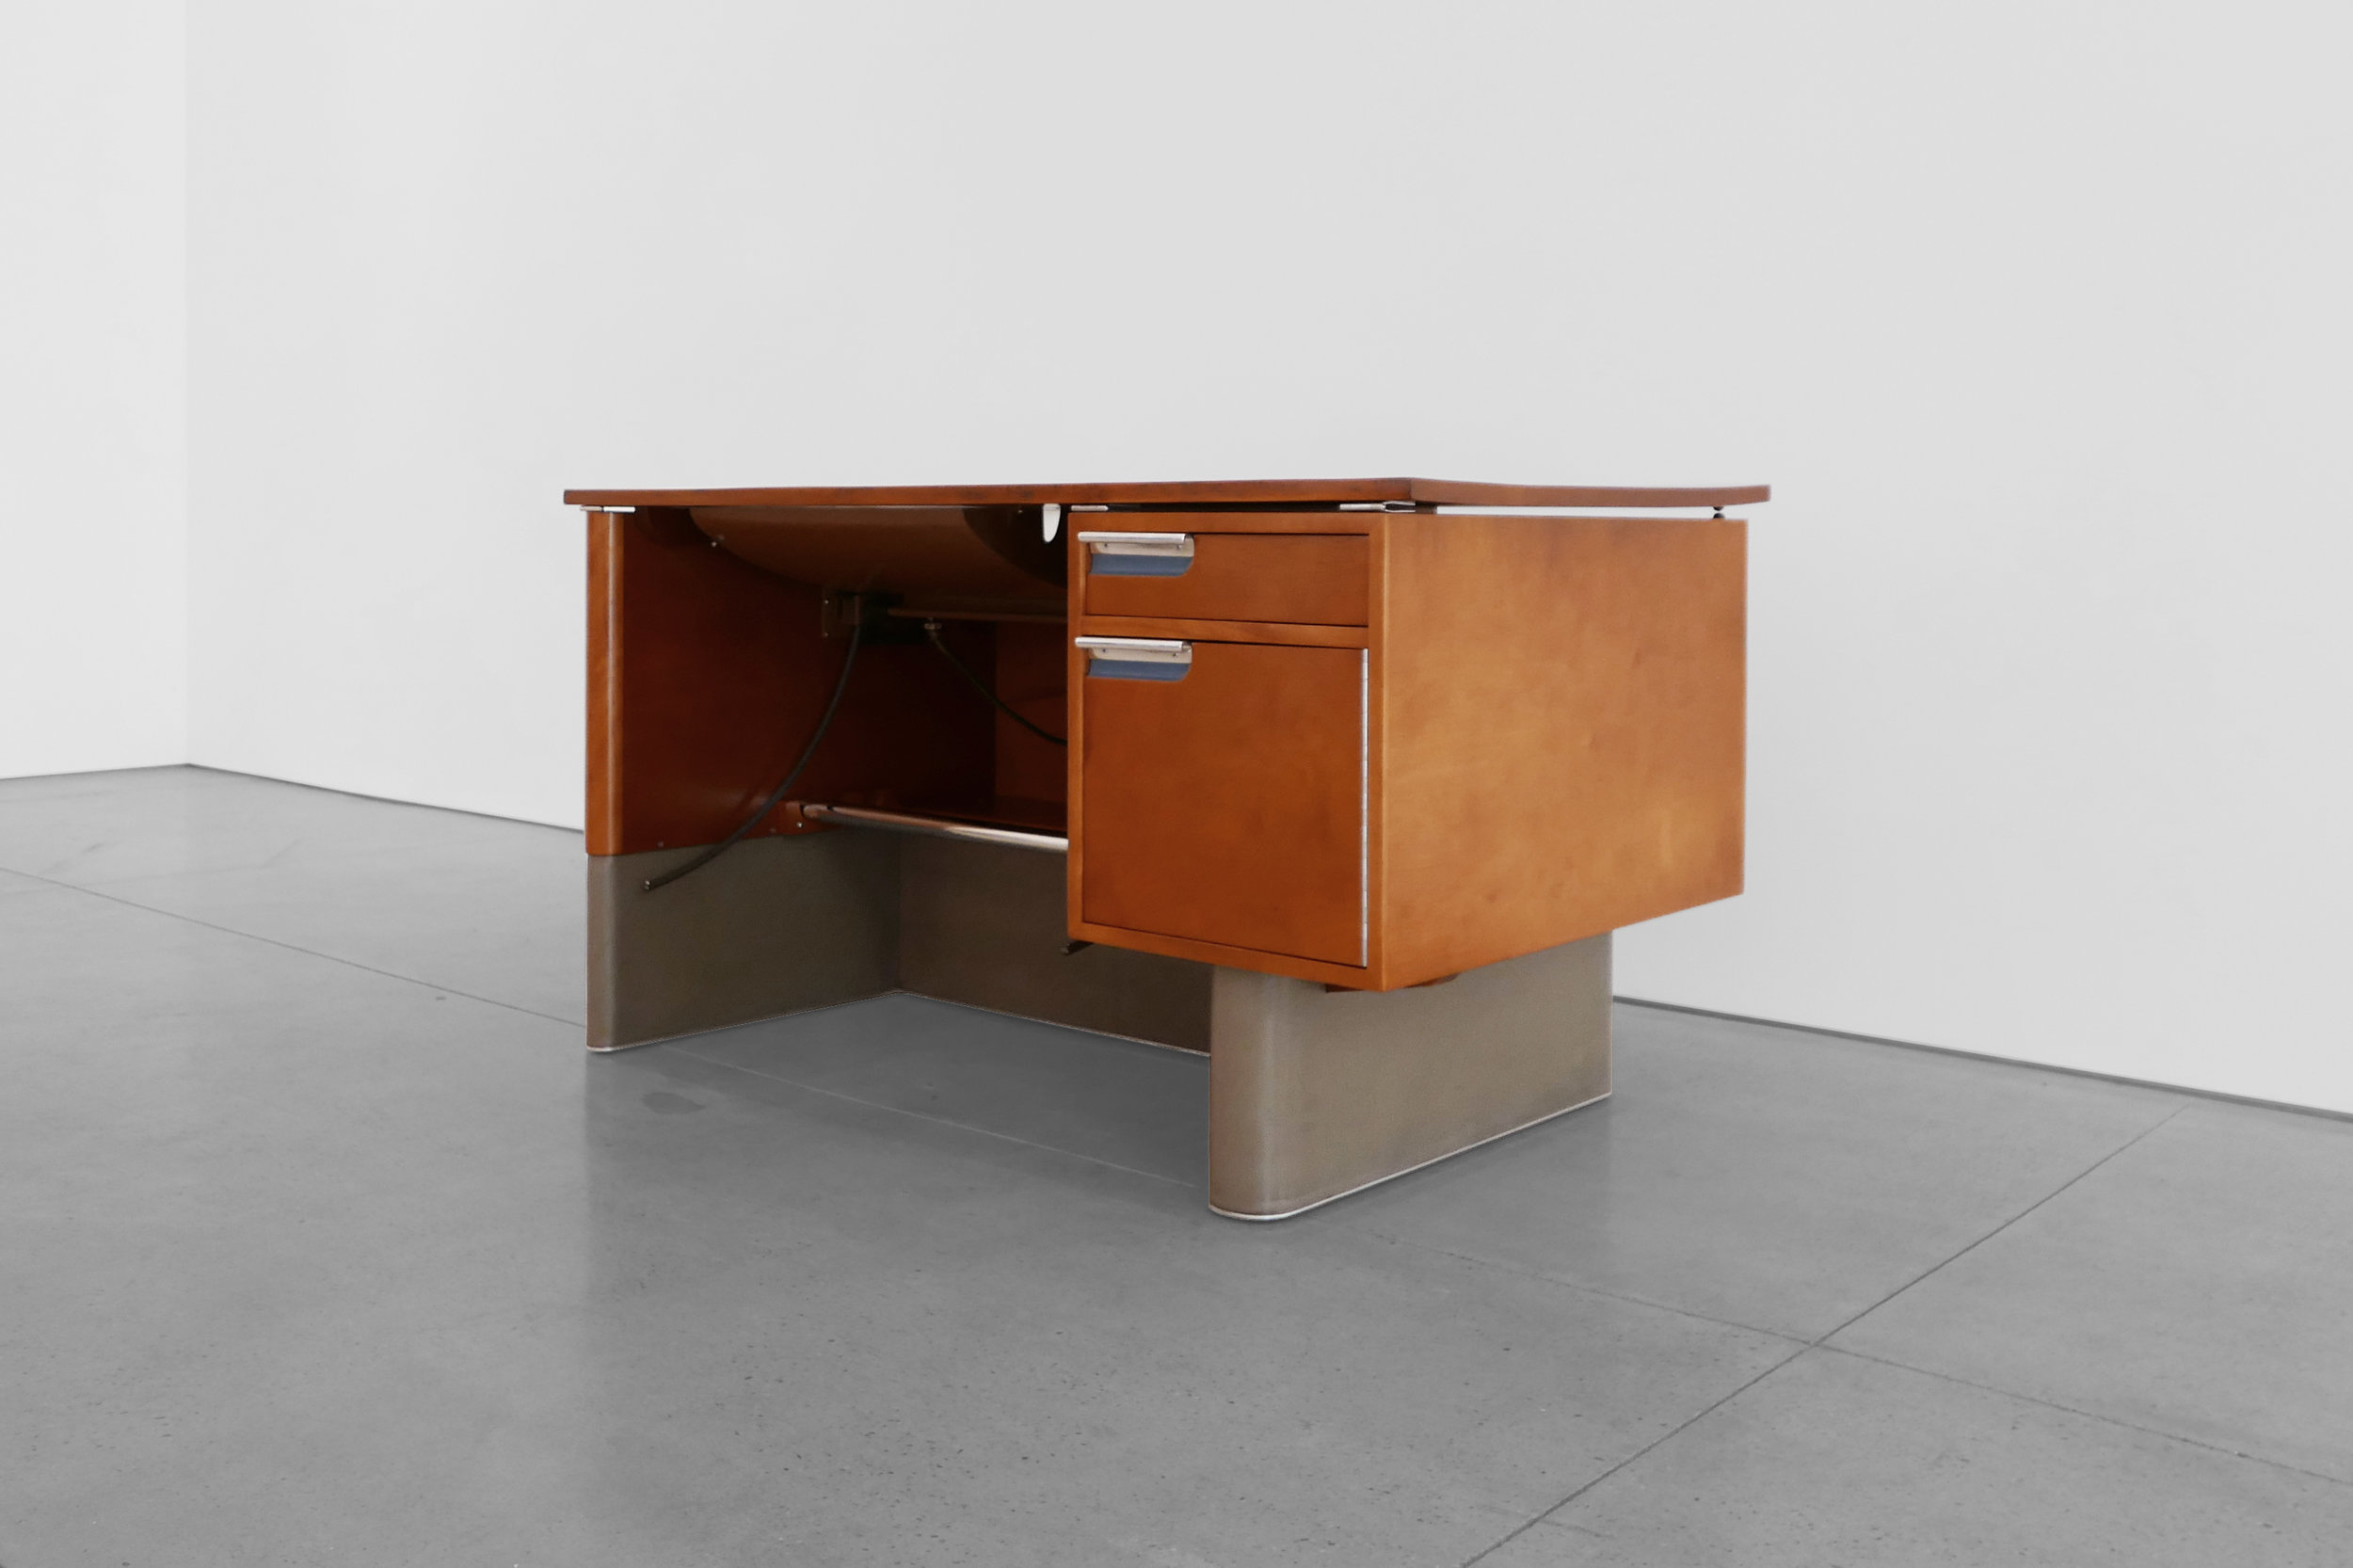 KEM Weber, Walt Disney Studios ANimation Desk, c. 1938, 30.5 H (Adjustable) x 56 W x 30 D inches_4.jpg